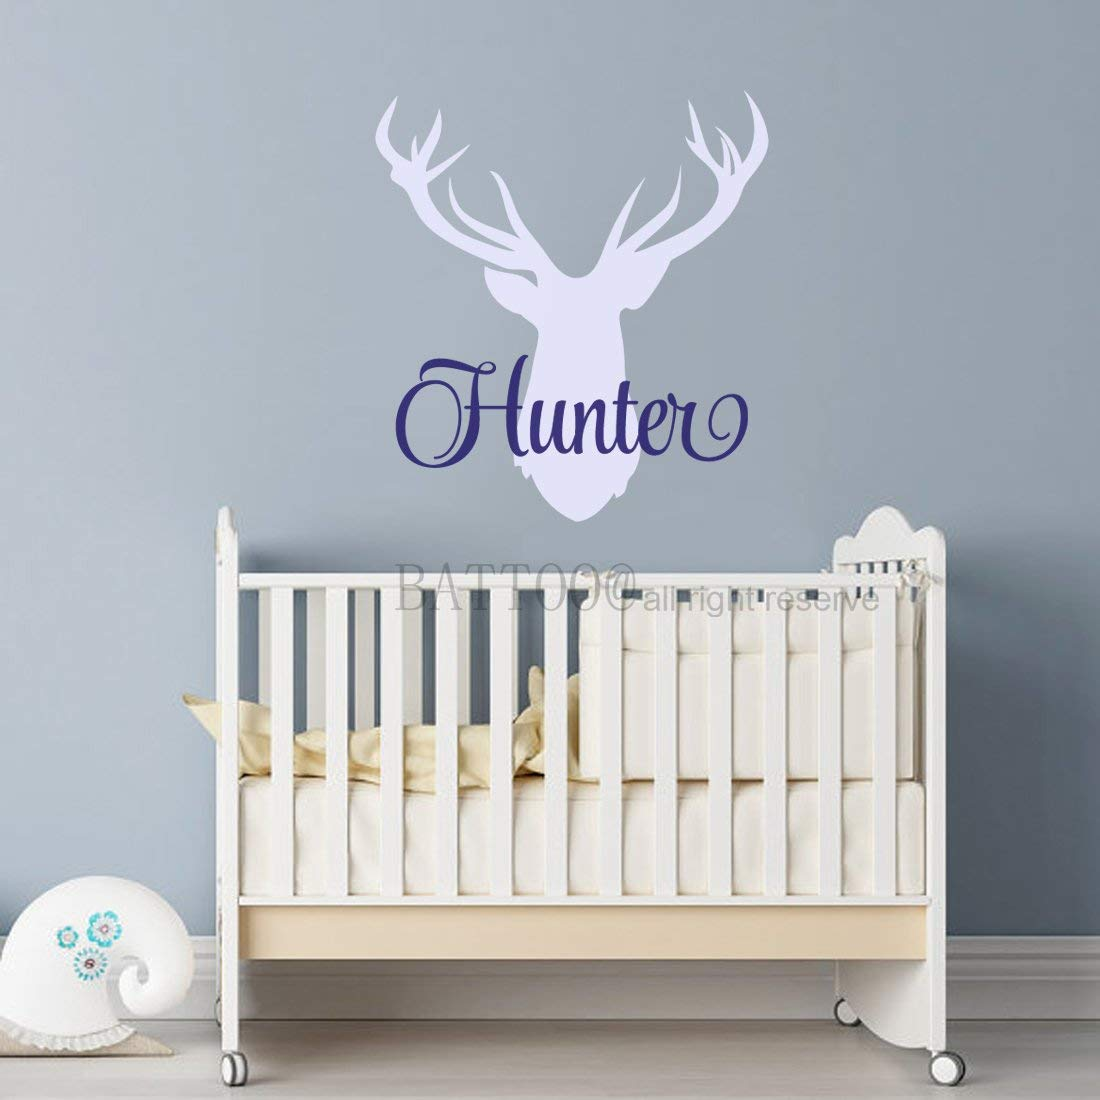 Battoo Antler Wall Decal Personalized